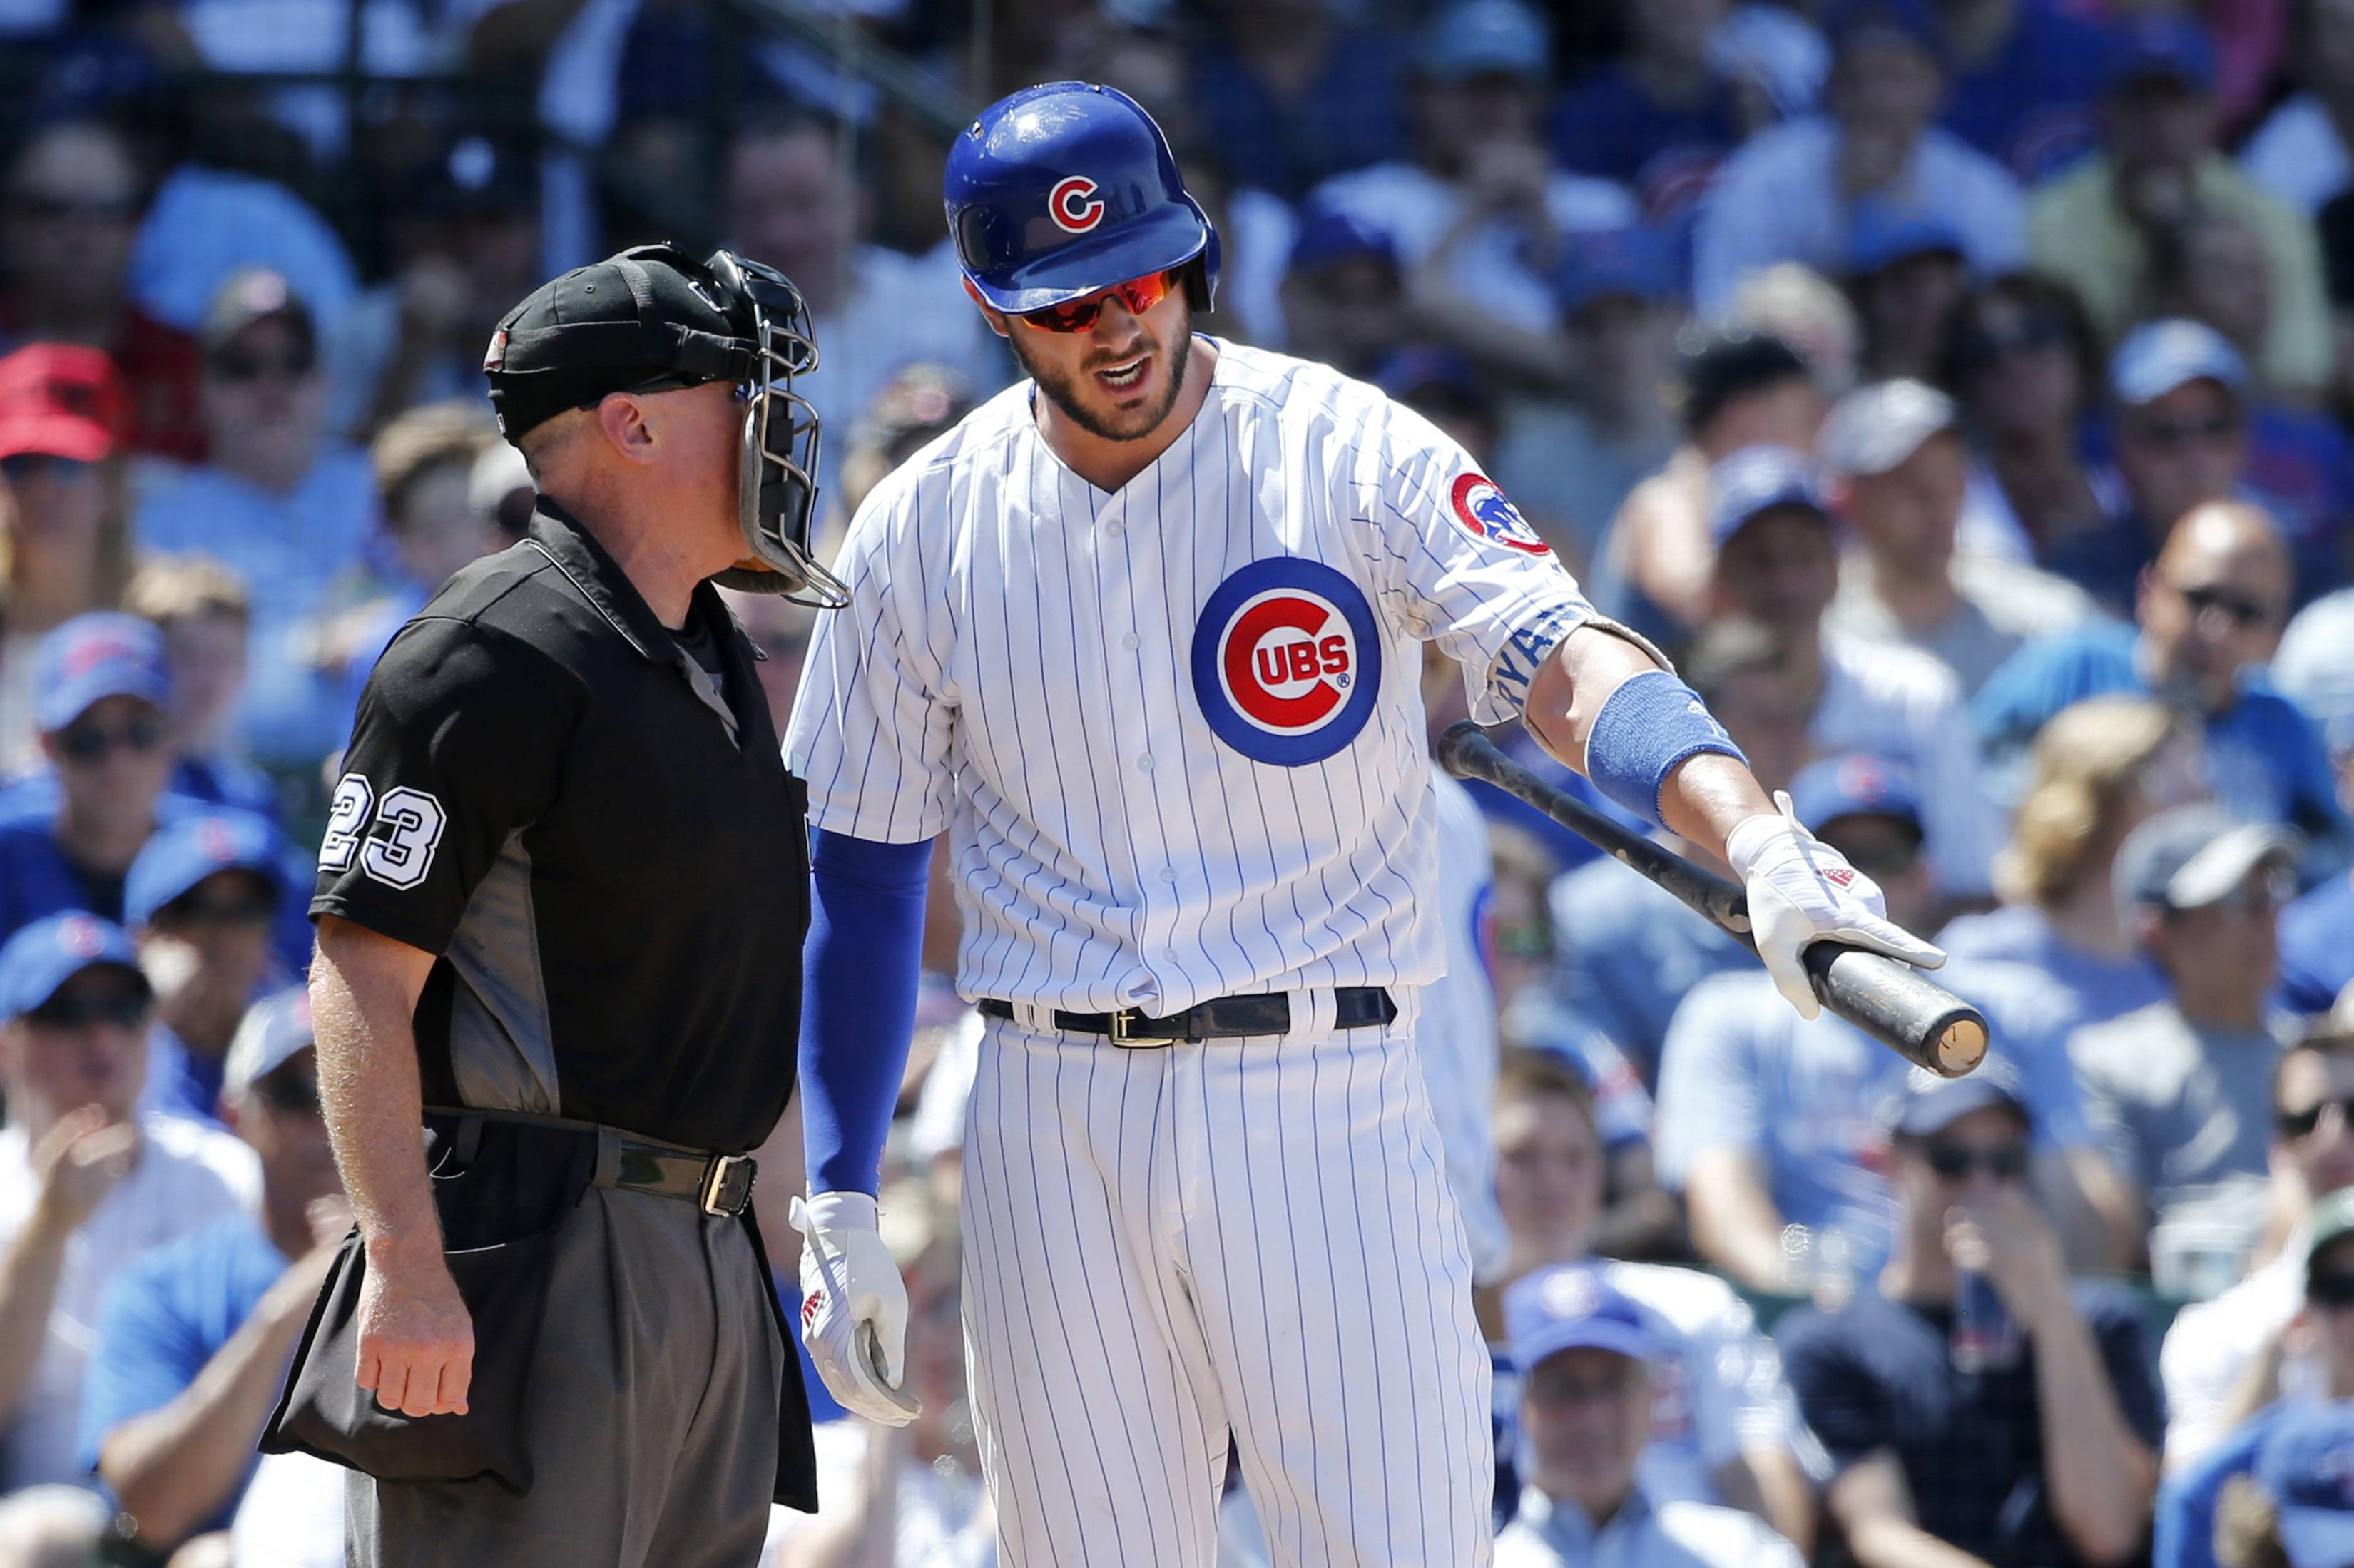 Chicago Cubs third baseman Kris Bryant argues with home plate umpire Lance Barksdale after Barksdale called Bryant out on strikes during the fourth inning against the Chicago White Sox on Tuesday. Barksdale eventually ejected Bryant from the game.